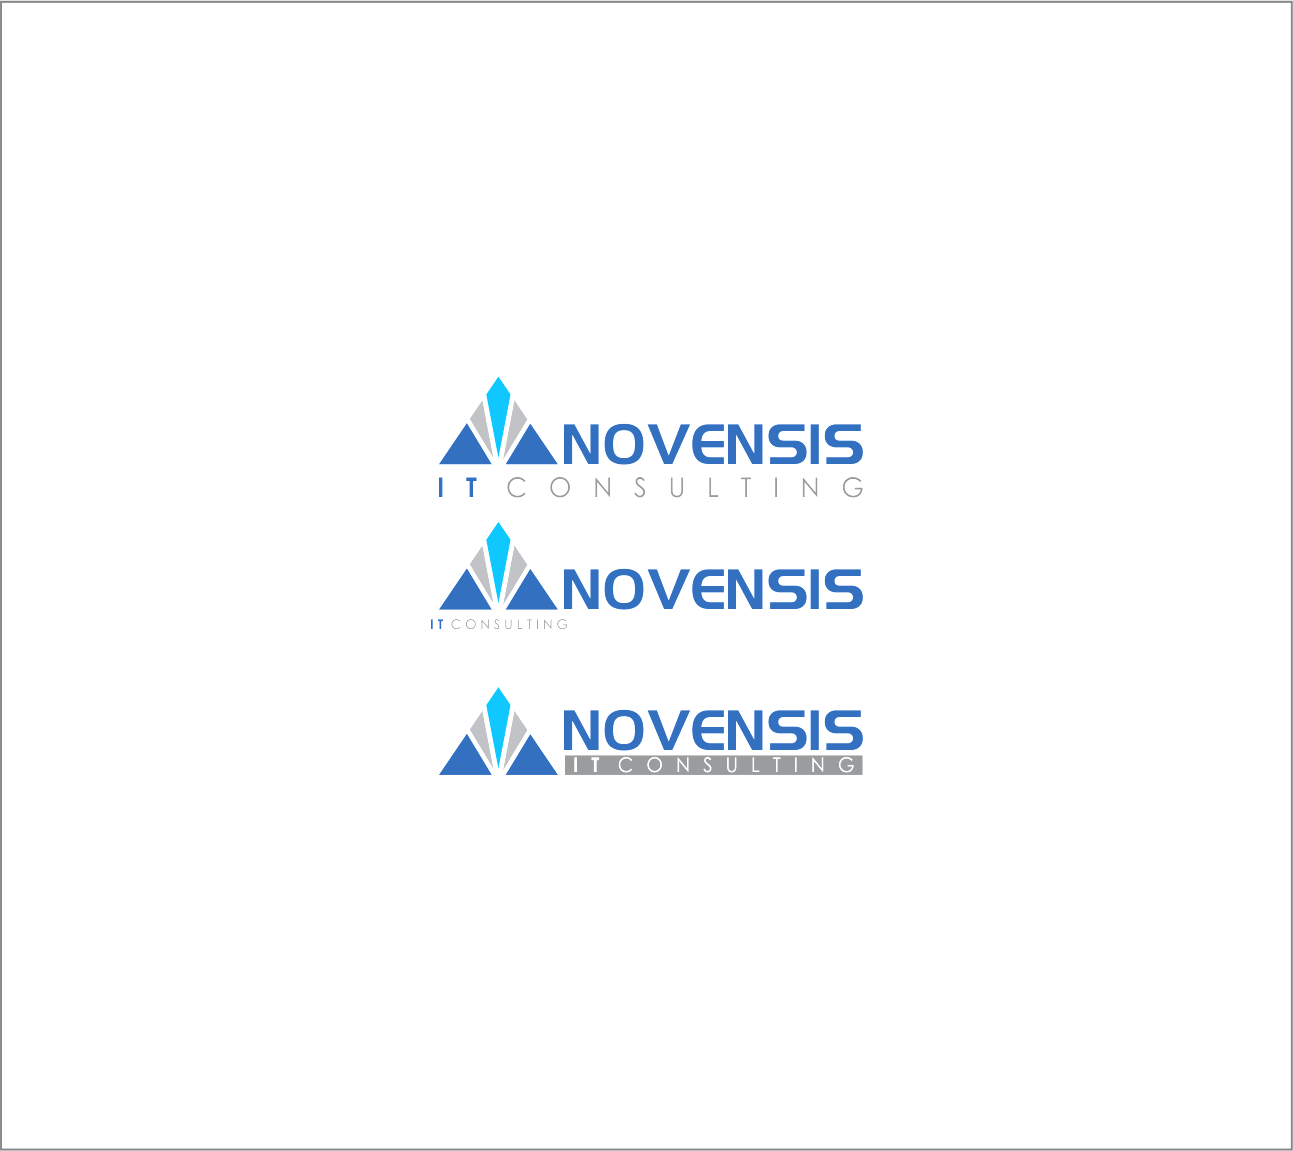 Logo Design by Armada Jamaluddin - Entry No. 138 in the Logo Design Contest Novensis Logo Design.